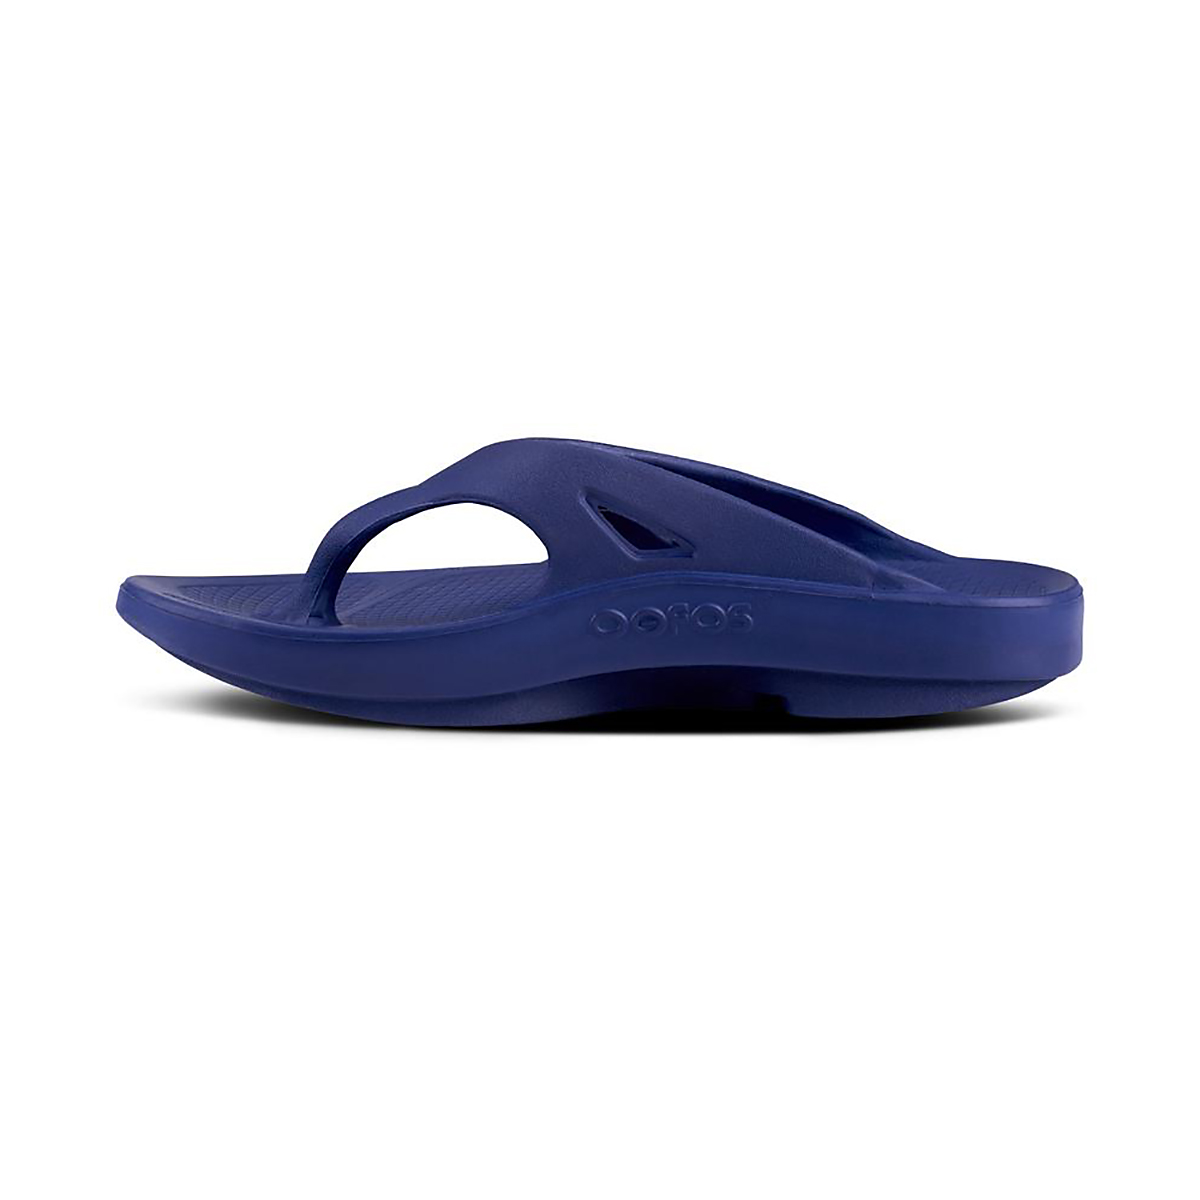 Oofos OOriginal Sport Recovery Sandal - Color: Navy - Size: M7/W9 - Width: Regular, Navy, large, image 2